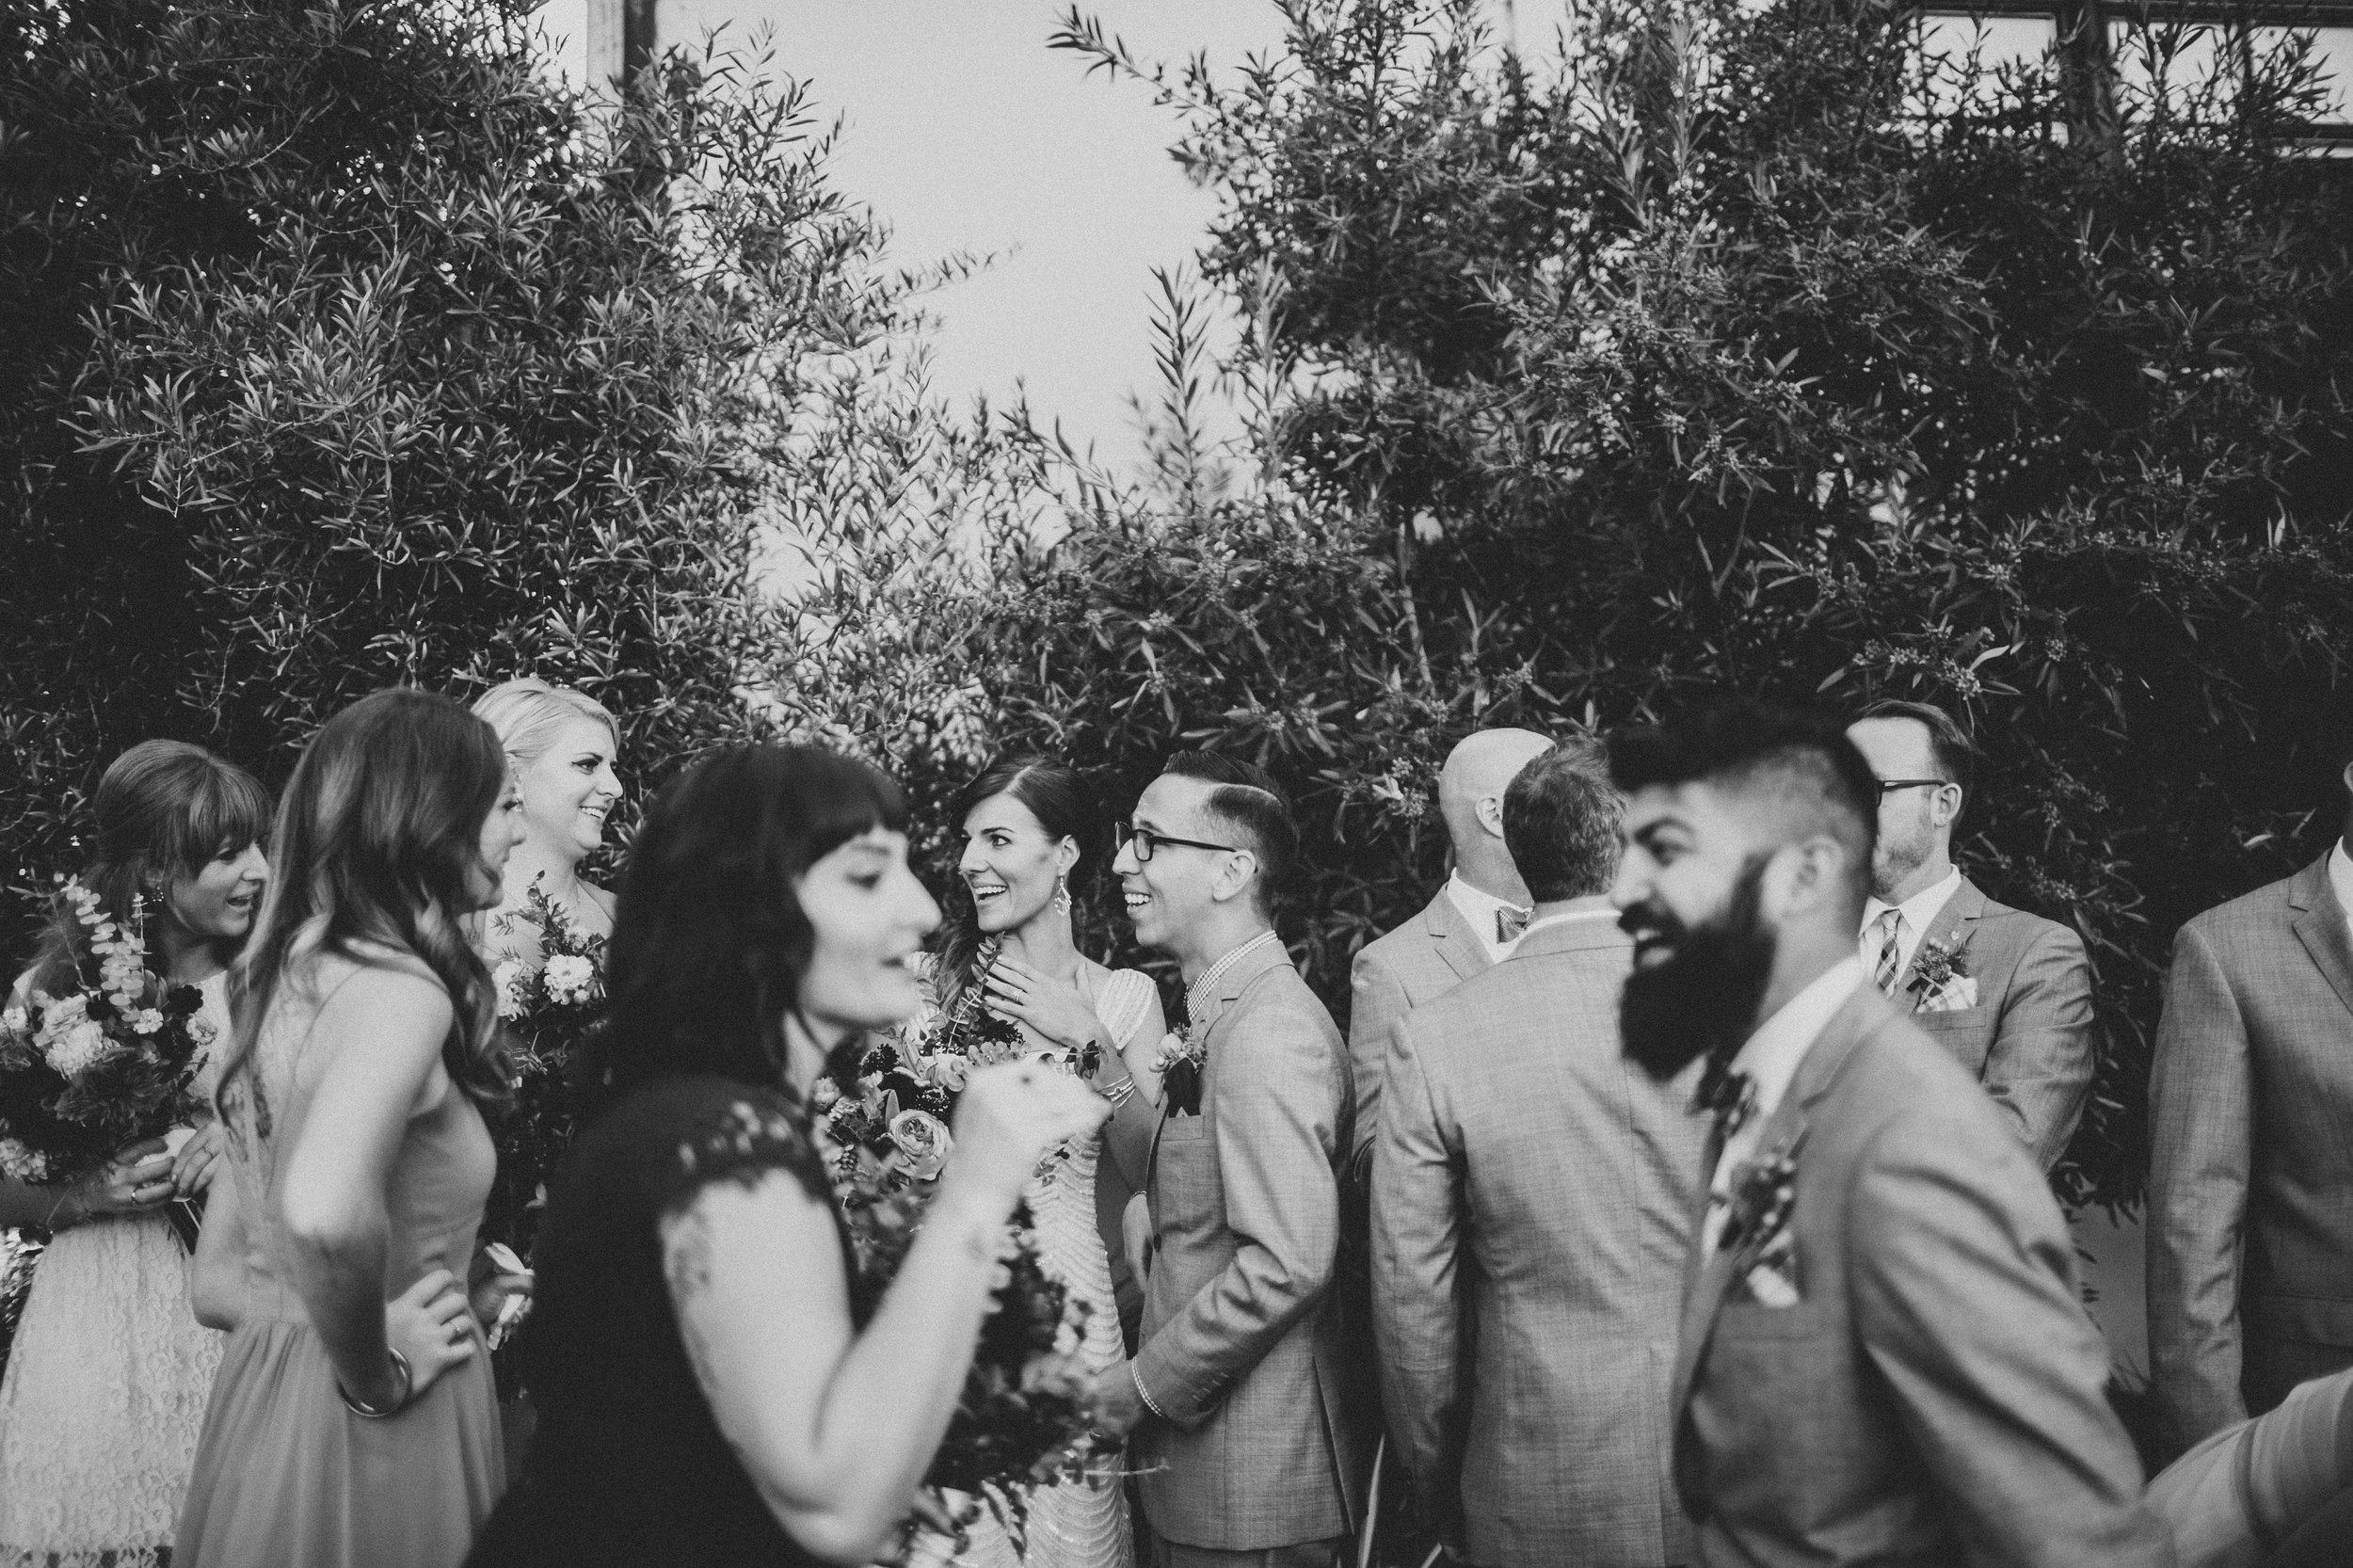 Nichole_Will_SanFranciso_Wedding_8.JPG